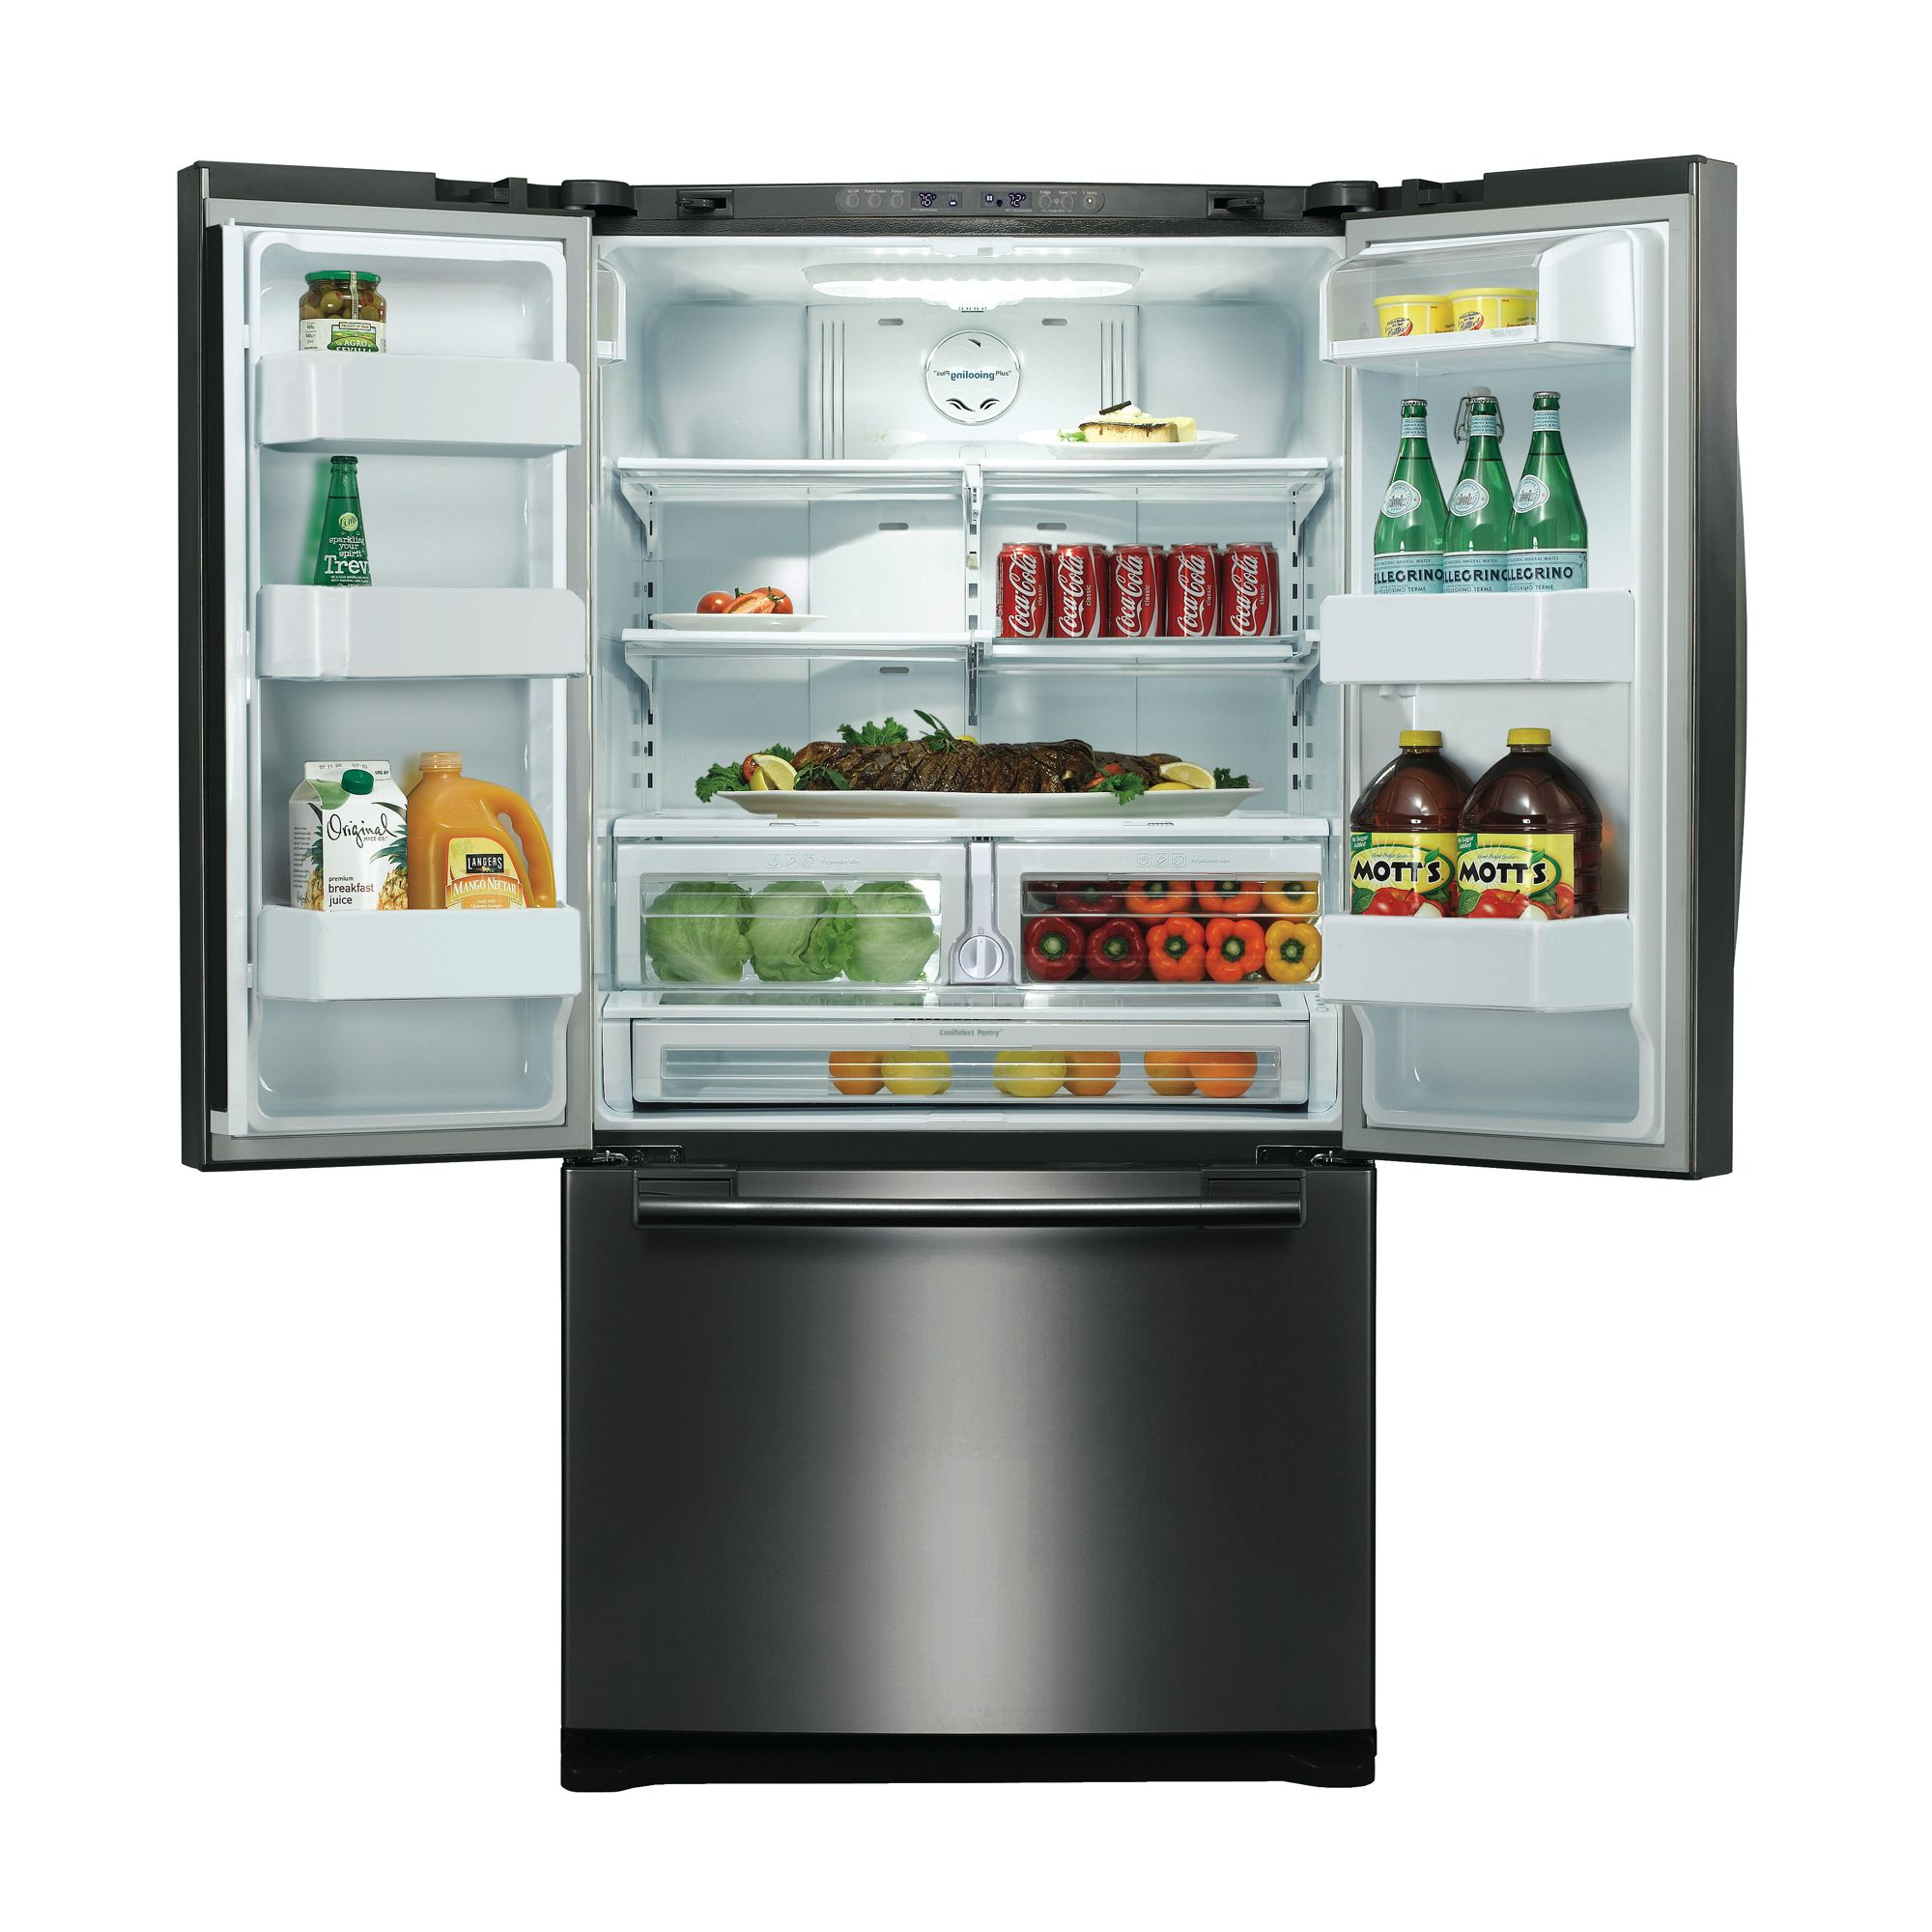 Samsung 29.0 cu. ft. Bottom-Freezer Refrigerator